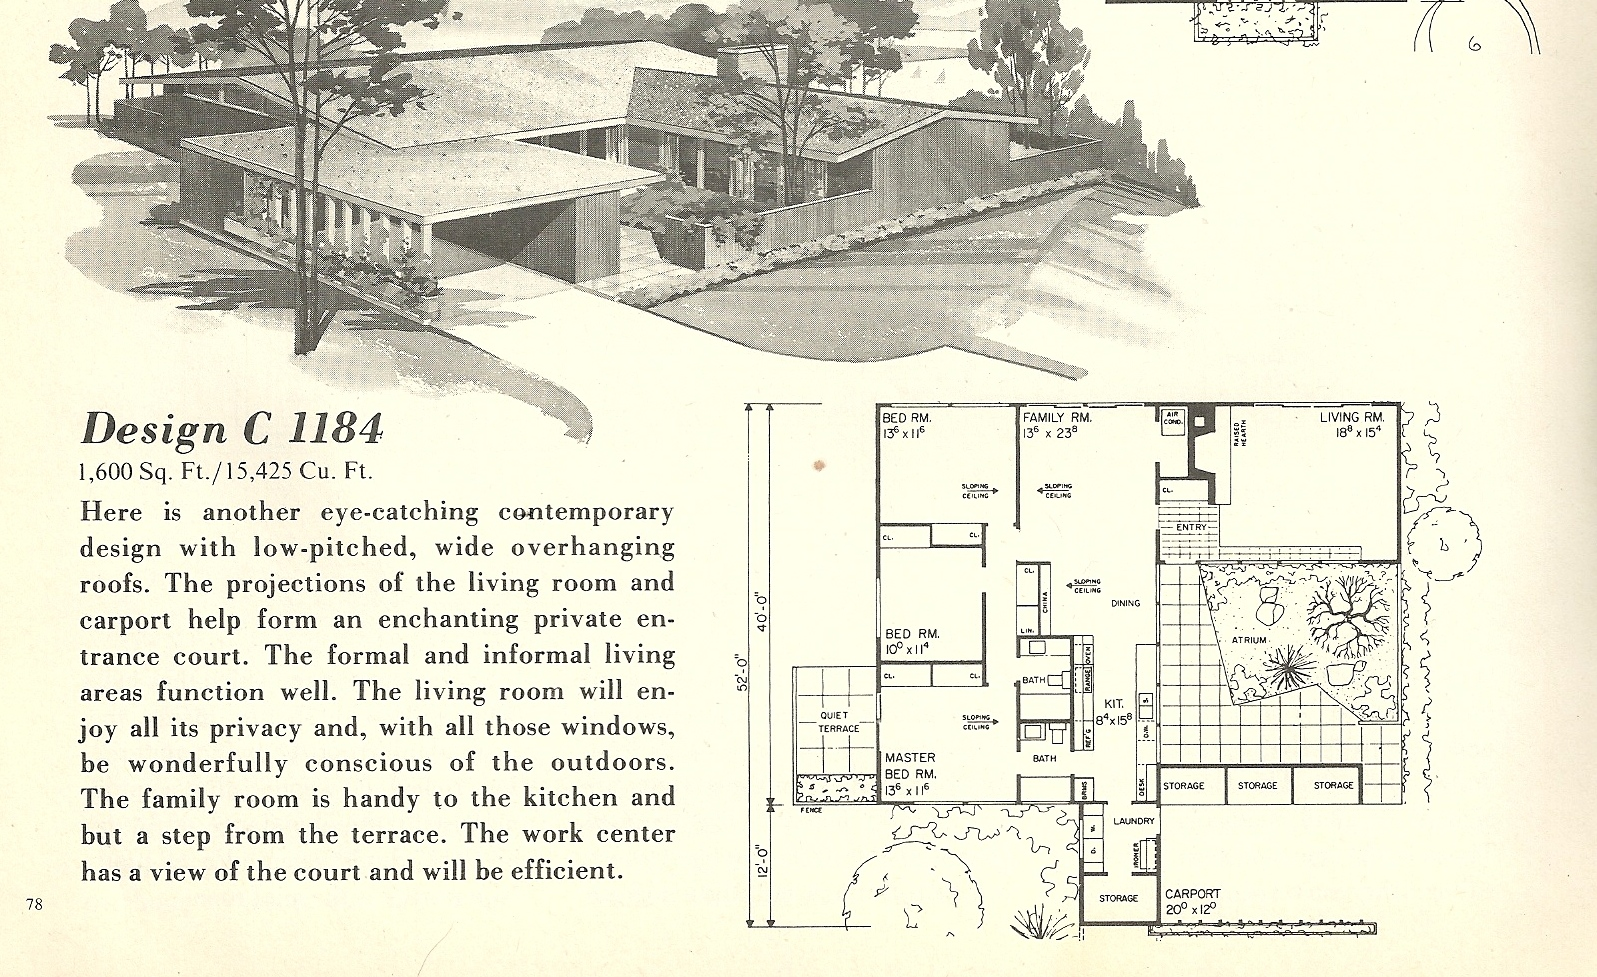 Vintage house plans 1184 antique alter ego for Mid century modern plans